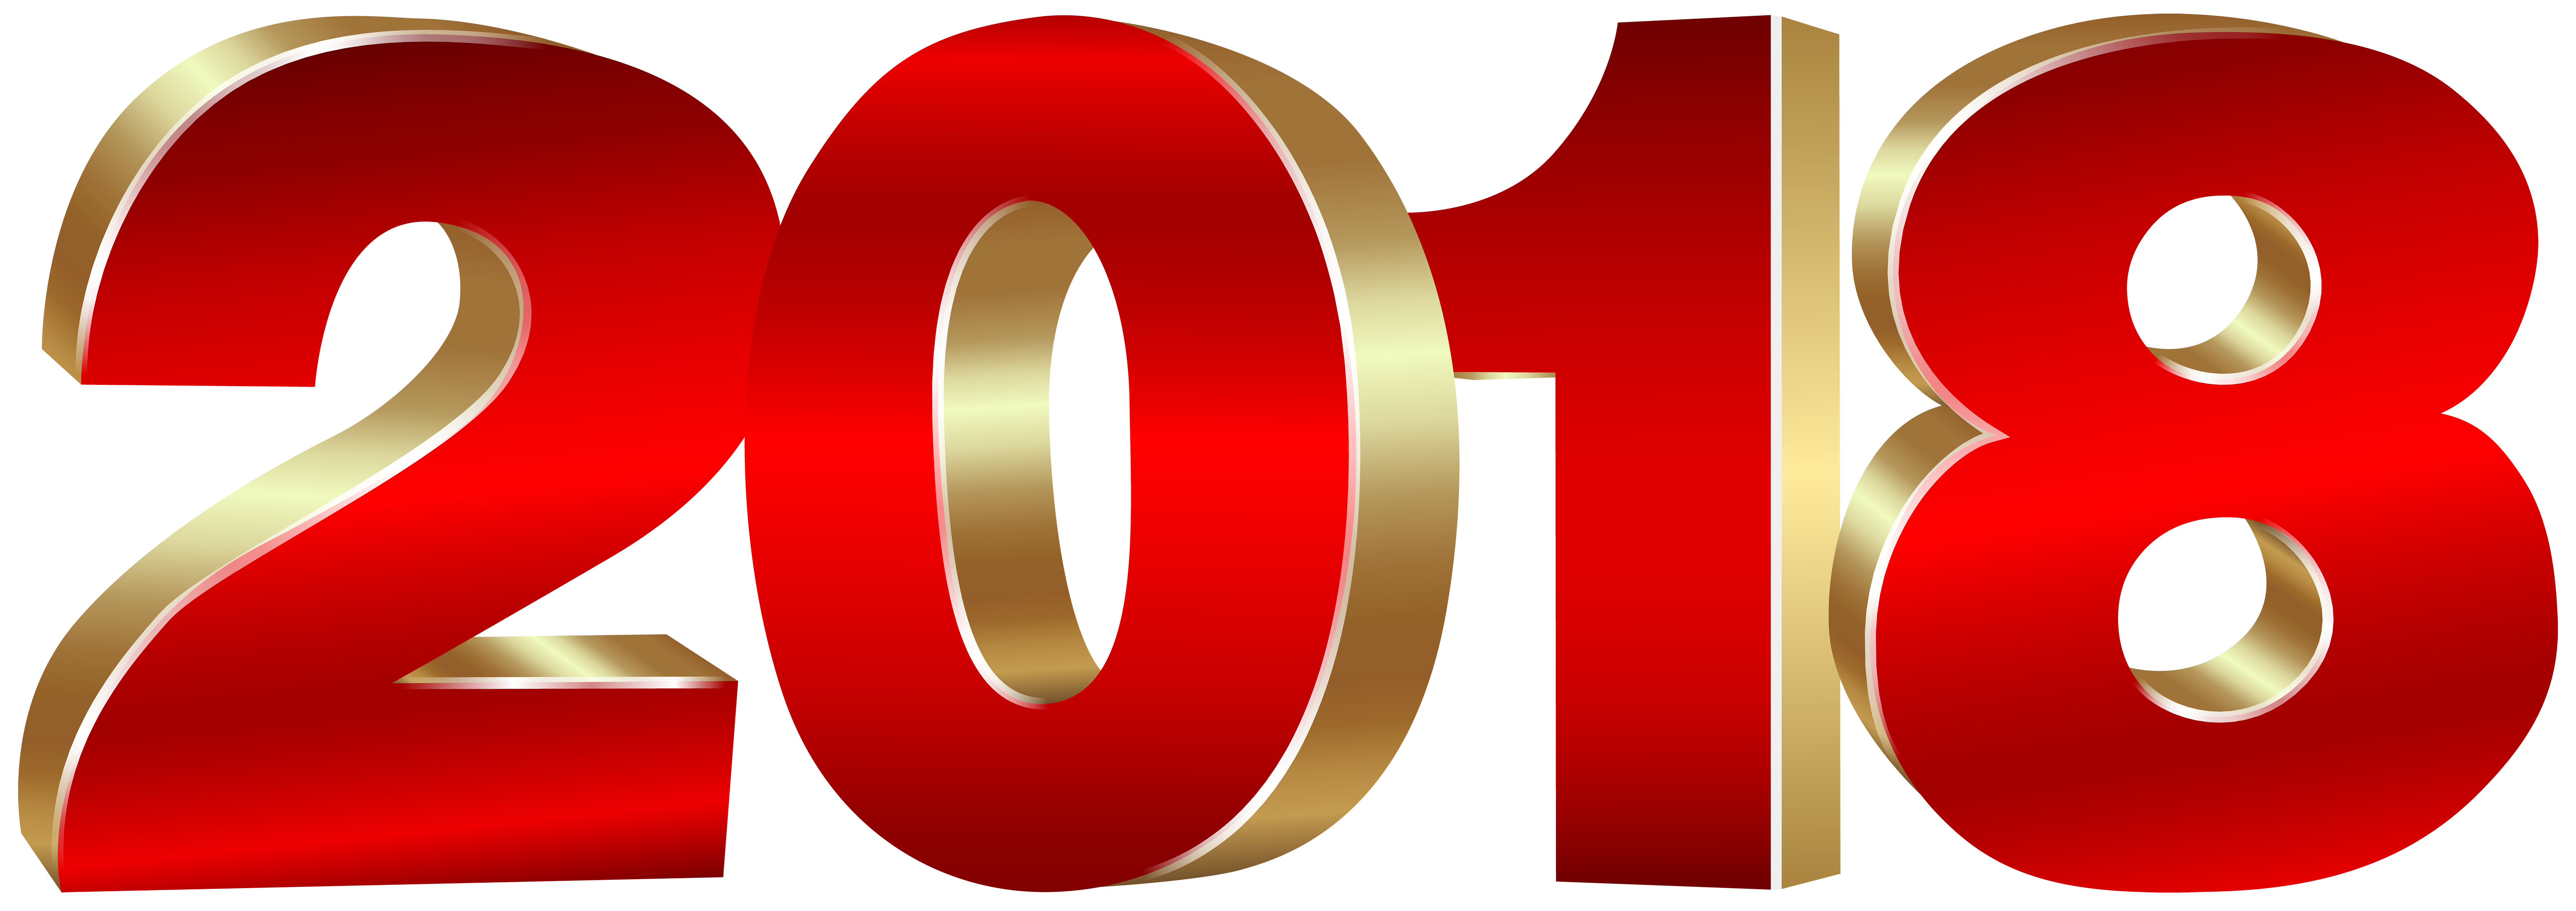 2018 Gold and Red PNG Clipart Image.